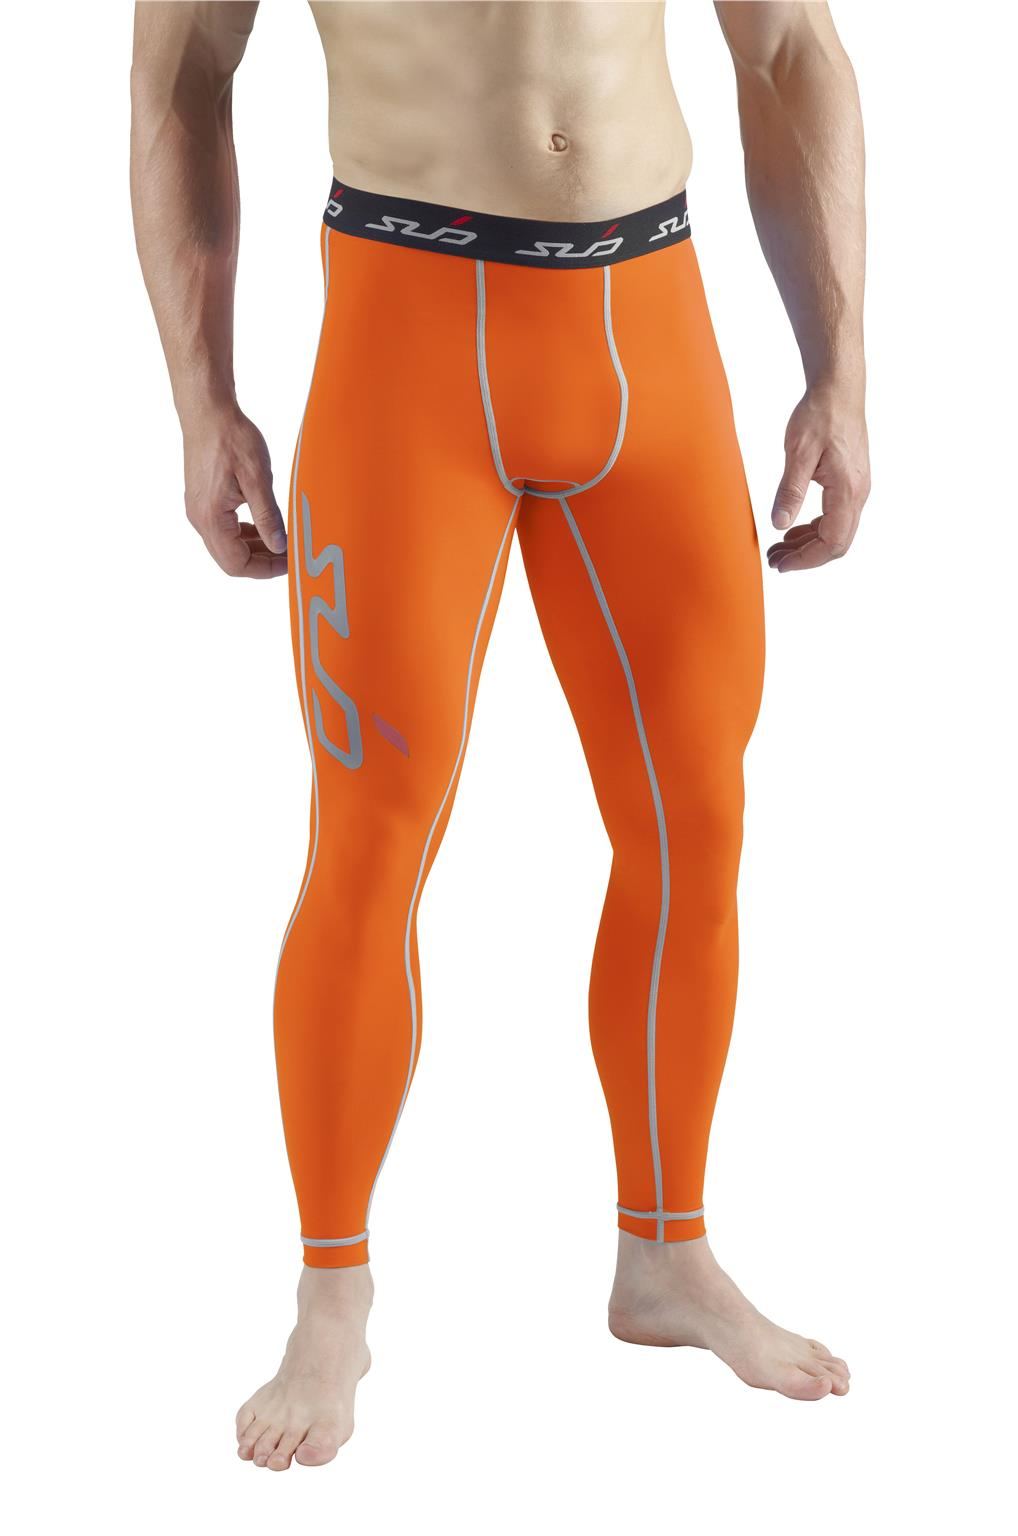 Shop for Compression Clothing including Running Leggings, Tops and other Compression Wear. Shop for Compression Clothing including Running Leggings, Tops and other Compression Wear. Menu {{ abpclan.gqtAmount }} SHOP 2XU Men's 24/7 Compression Socks.